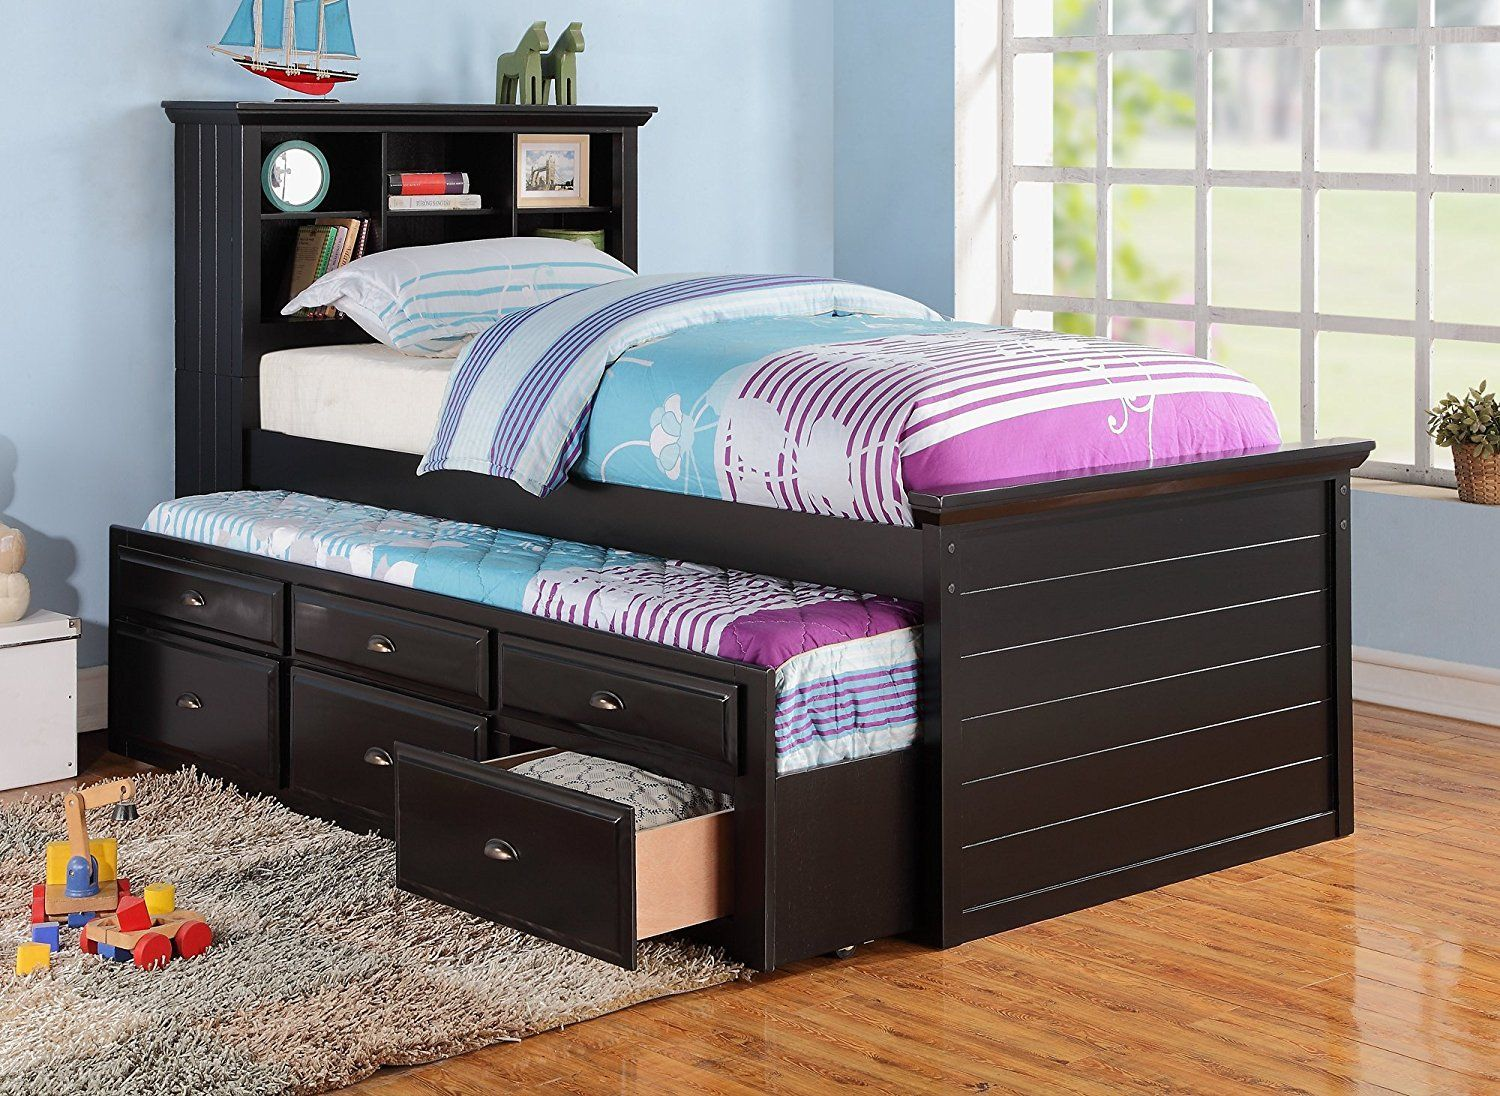 9 Furniture4you Black Captain Twin 3 Drawers Storage Cheap Bedroom Furniture Bed With Drawers Twin Trundle Bed